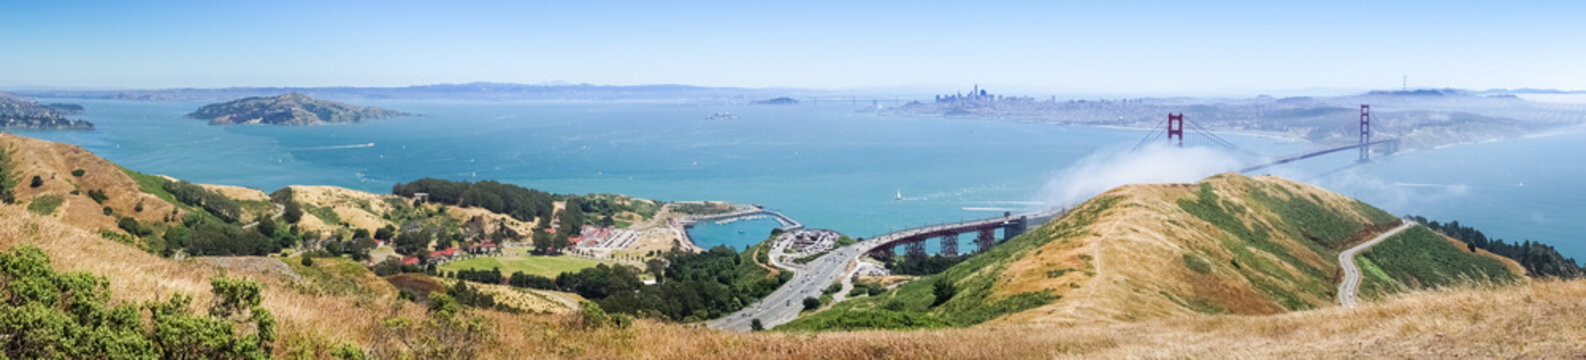 Panoramic view of San Francisco bay, Golden Gate Bridge, Angel Island and the Financial District, California